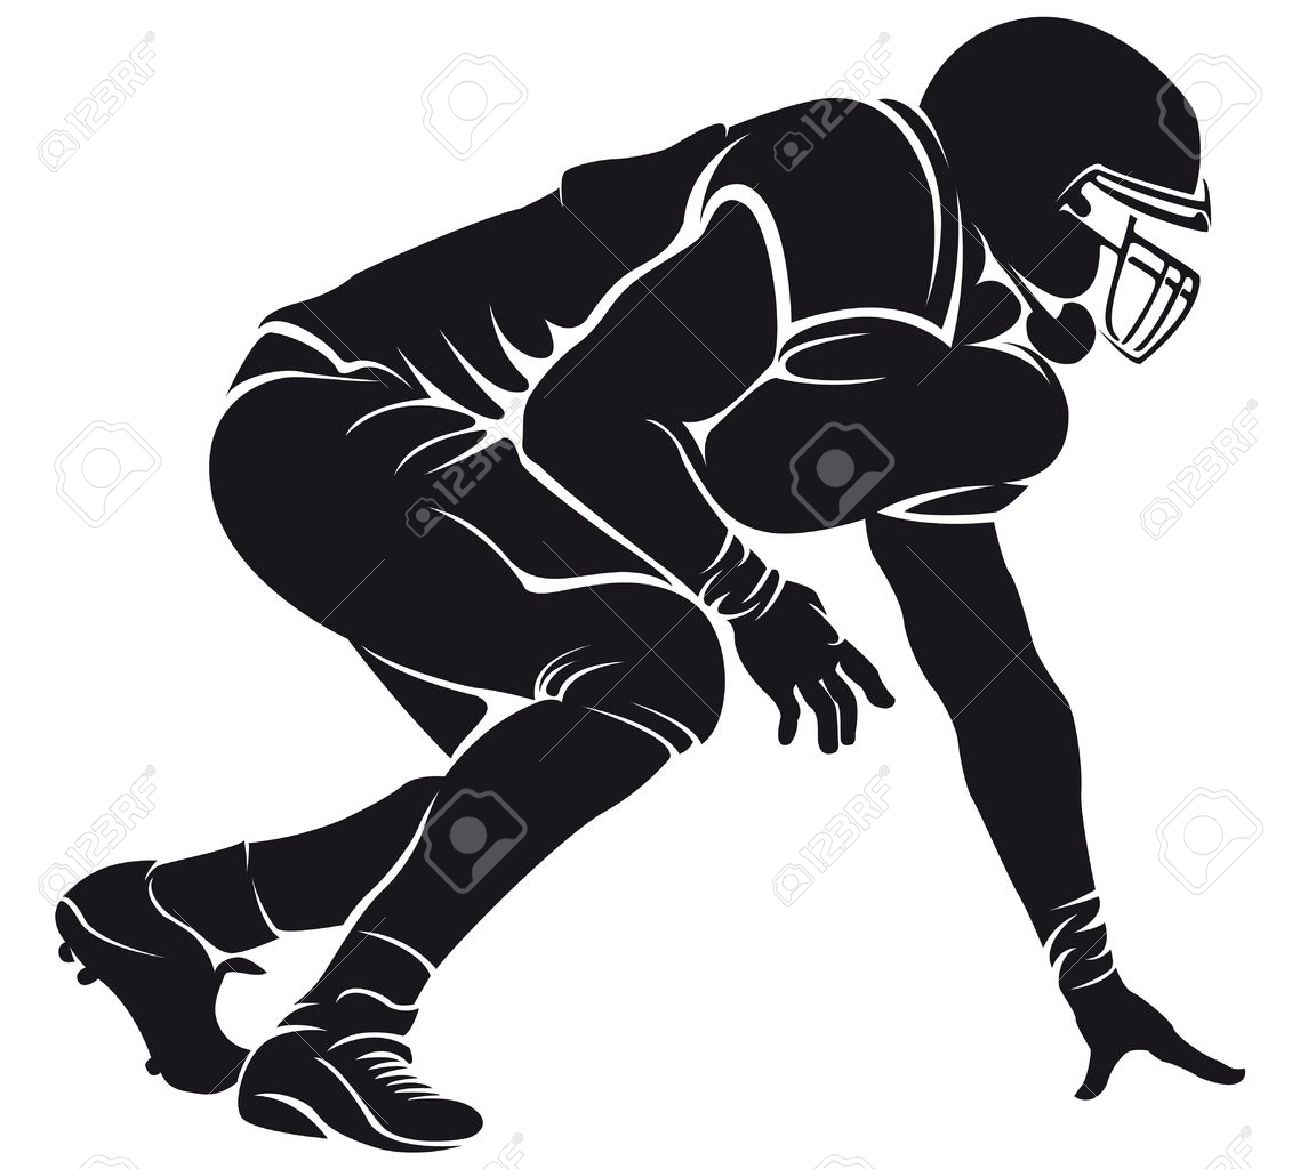 31,589 Football Player Silhouette Stock Illustrations, Cliparts.